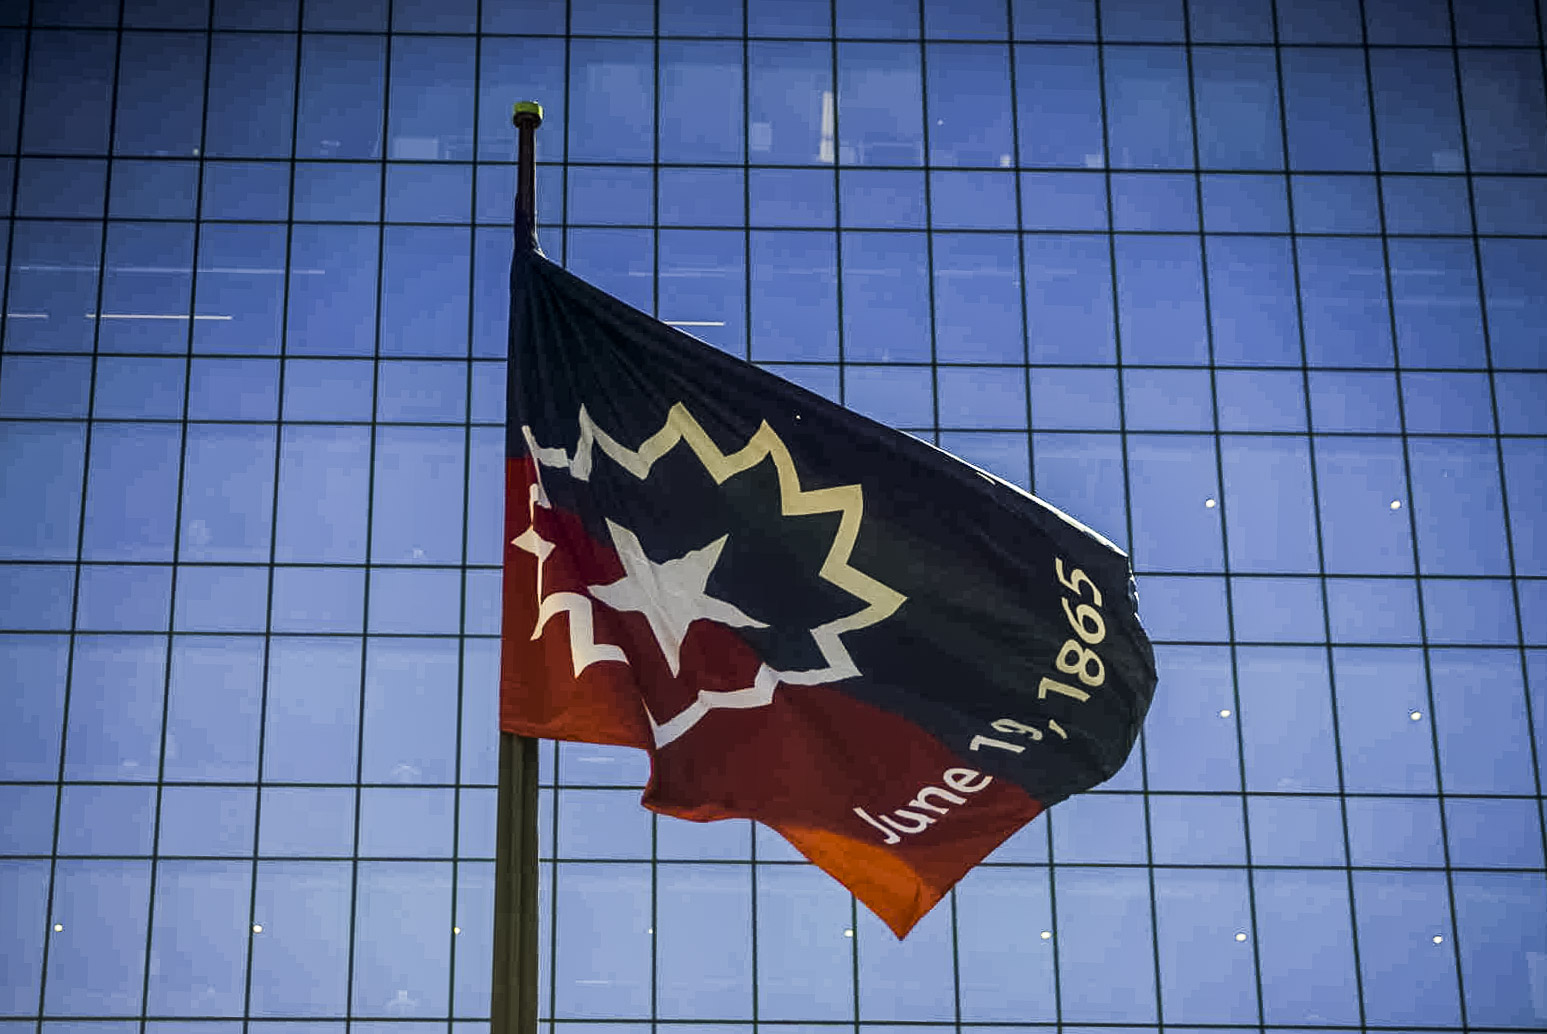 A Juneteenth flag was raised at Daley Center Plaza in June.